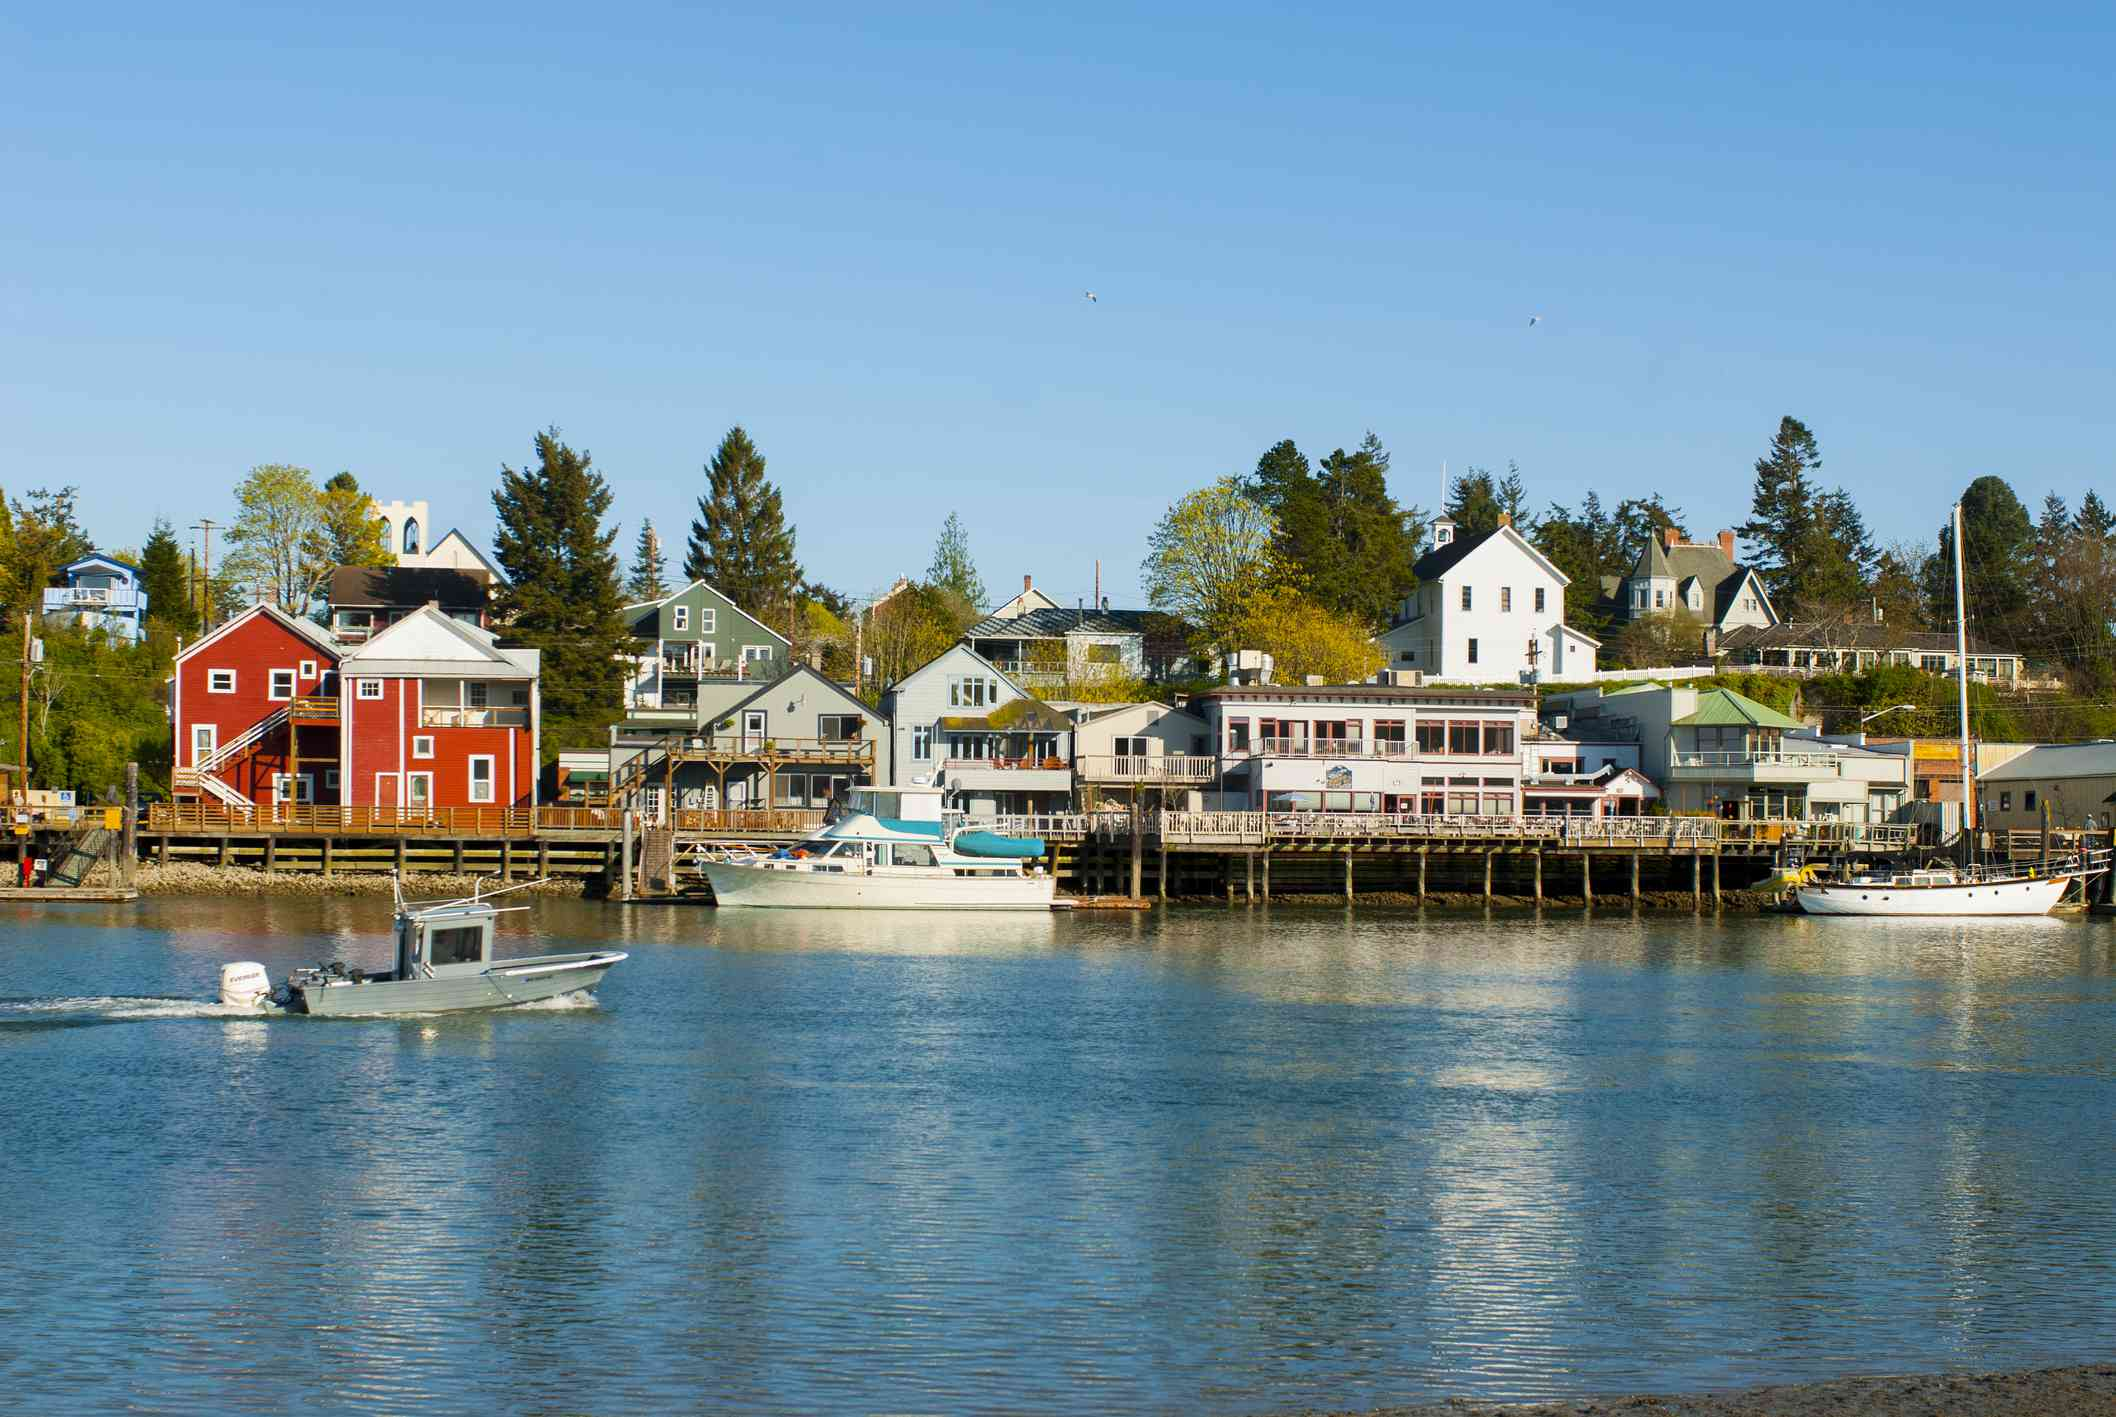 Town of La Conner along the Swinomish Channel, Skagit Valley, Washington State